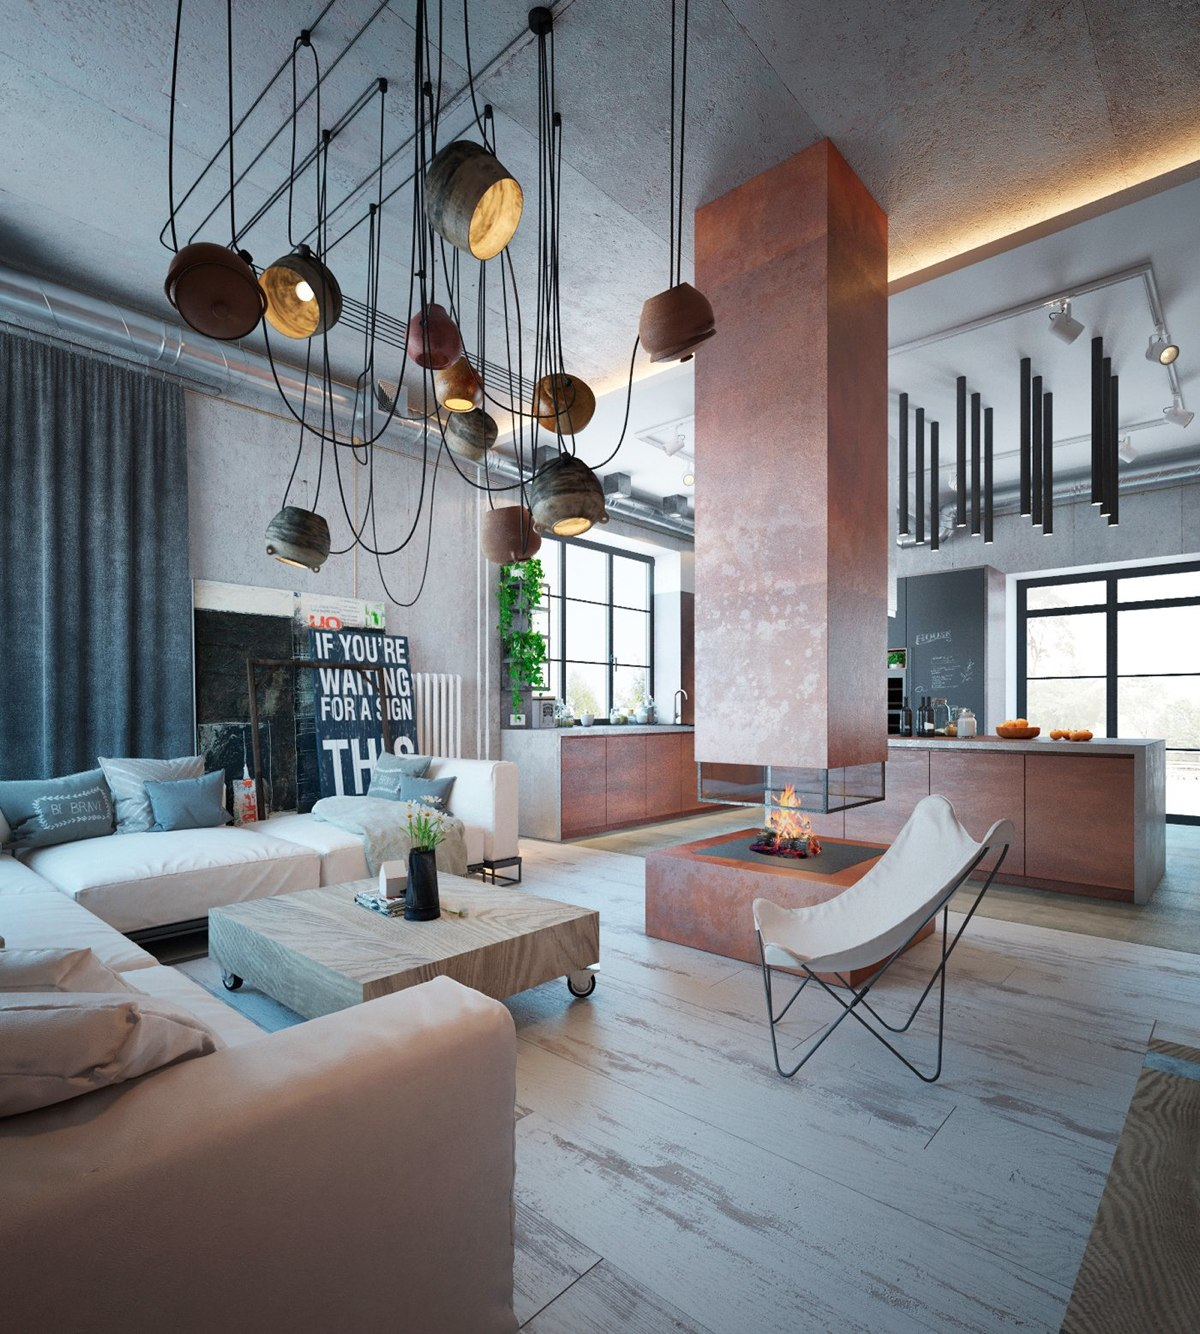 & Industrial Style Living Room Design: The Essential Guide